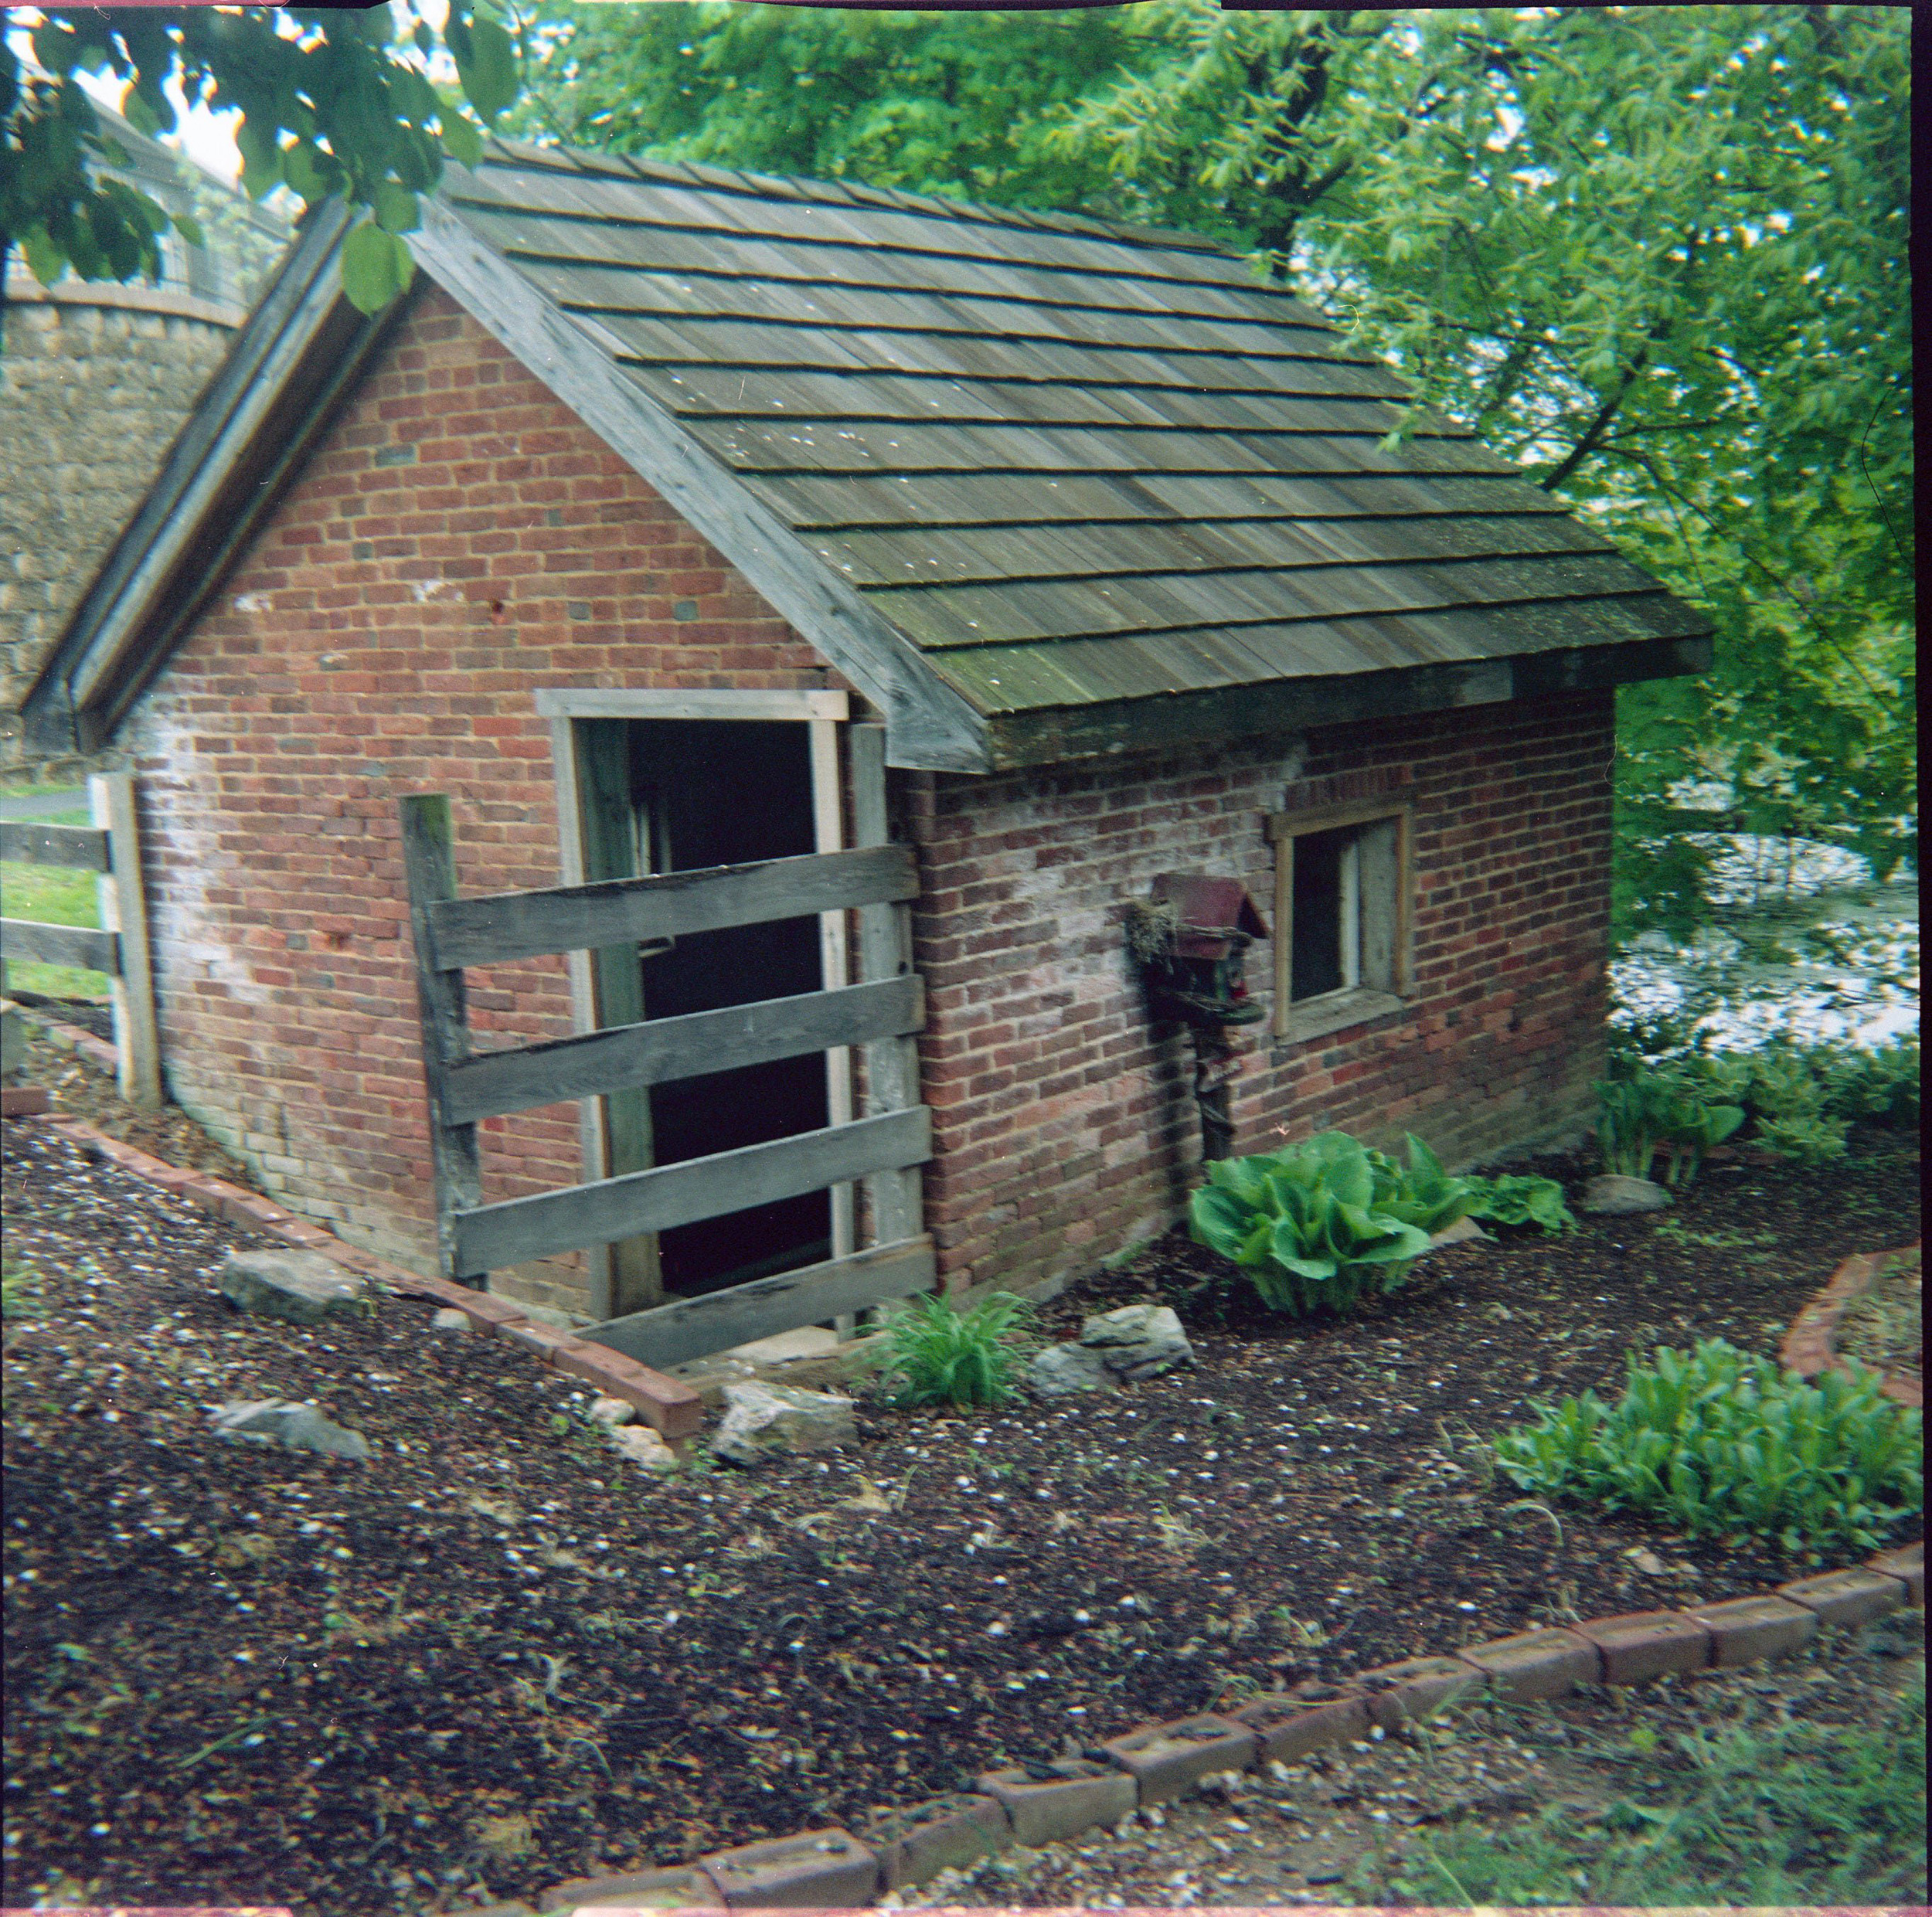 springhouse_from_path.jpg